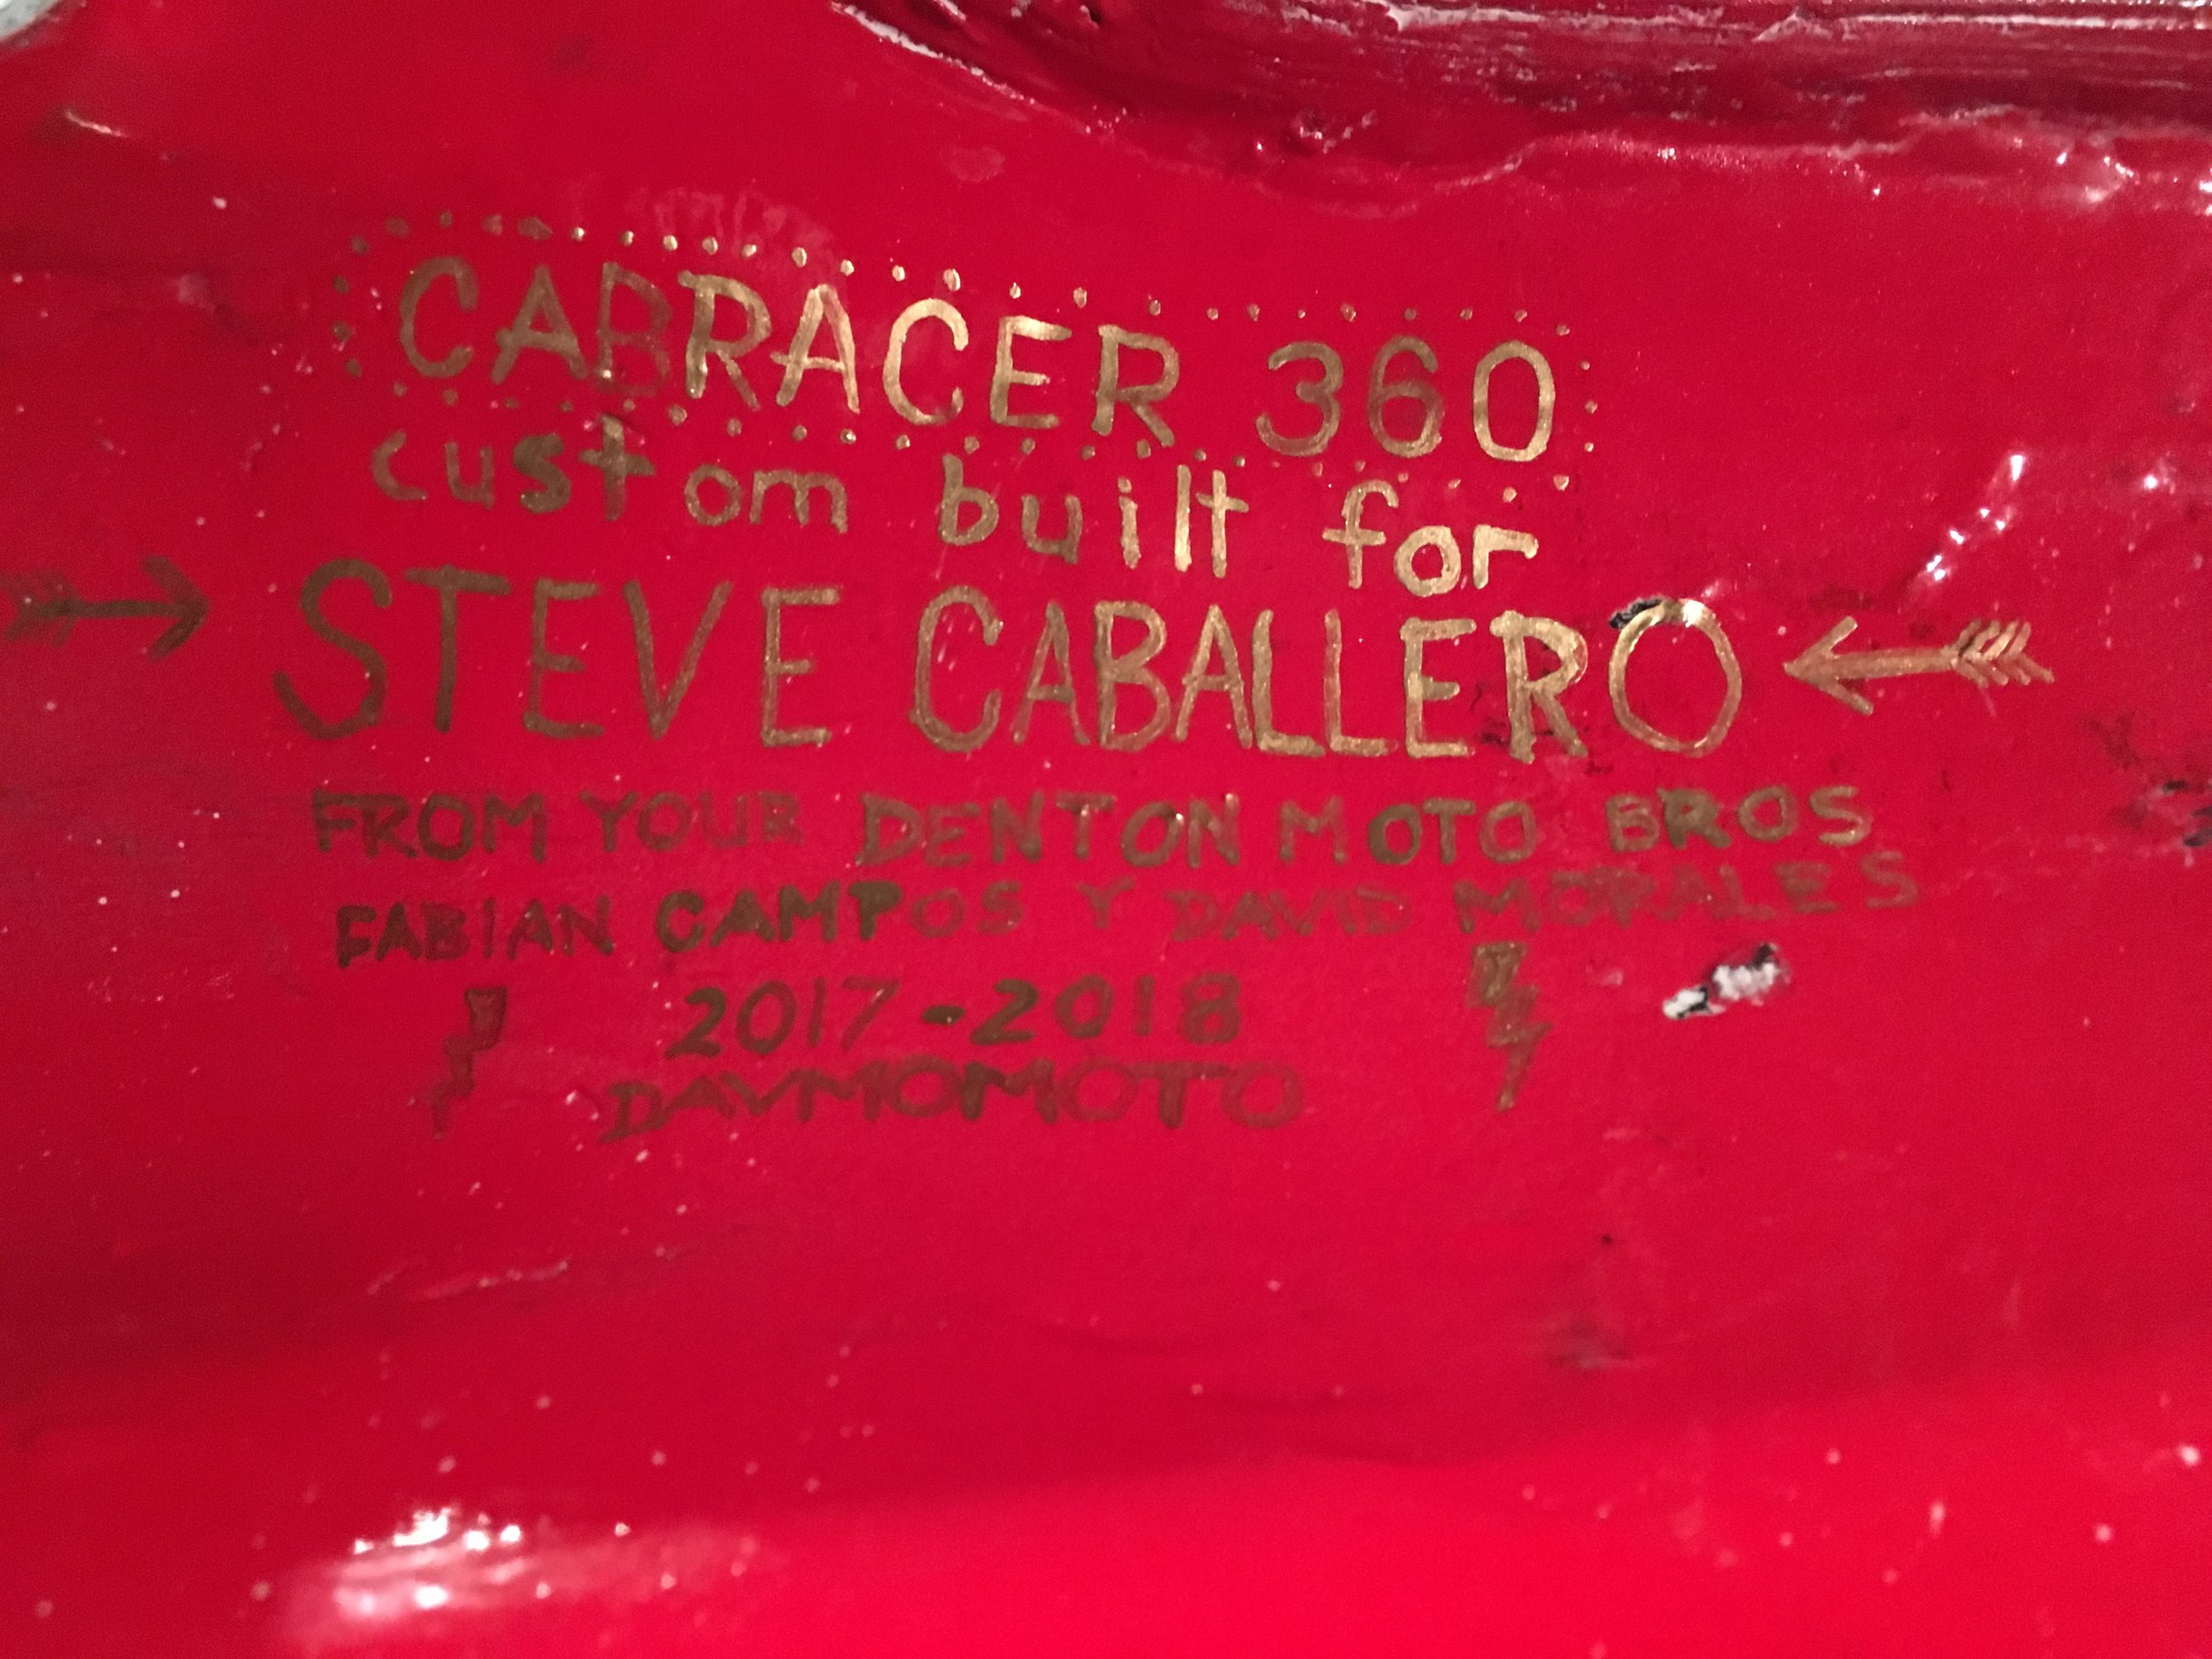 A lot of my bikes have a hidden inscription. This was on the bottom of the tank.